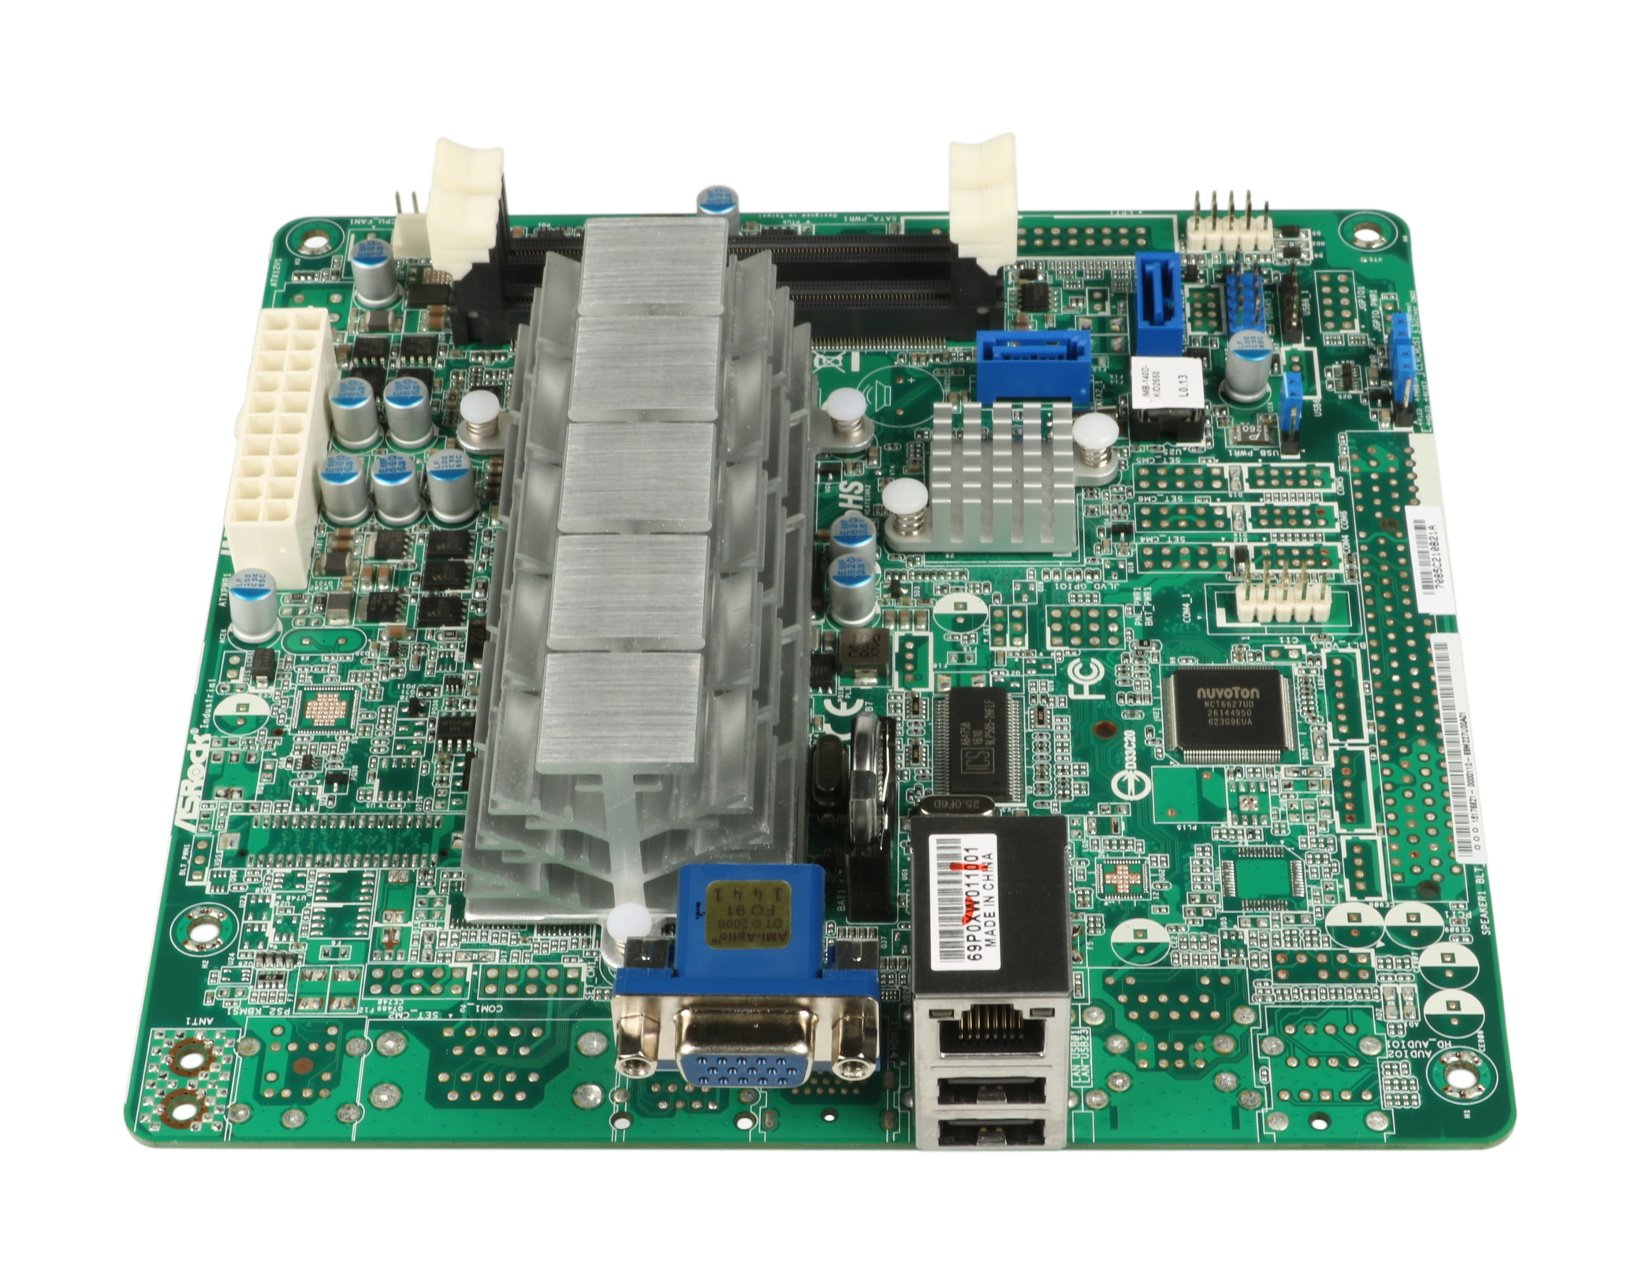 Main Motherboard PCB Assembly for Kronos 2